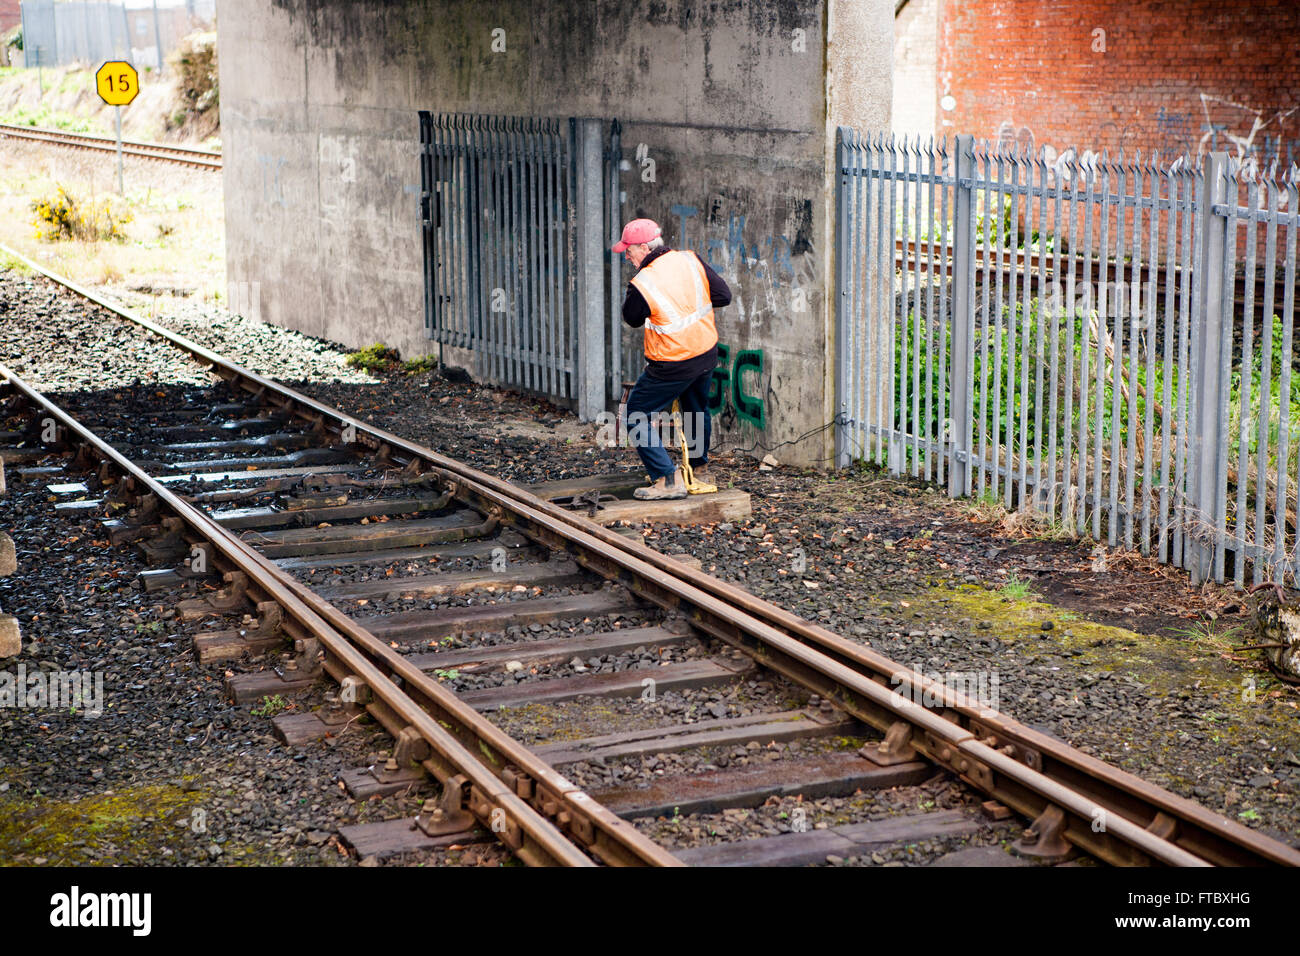 Whitehead, Co Antrim,UK 28th March 2016 . A railwayman Changing signals by hand using a lever - Stock Image